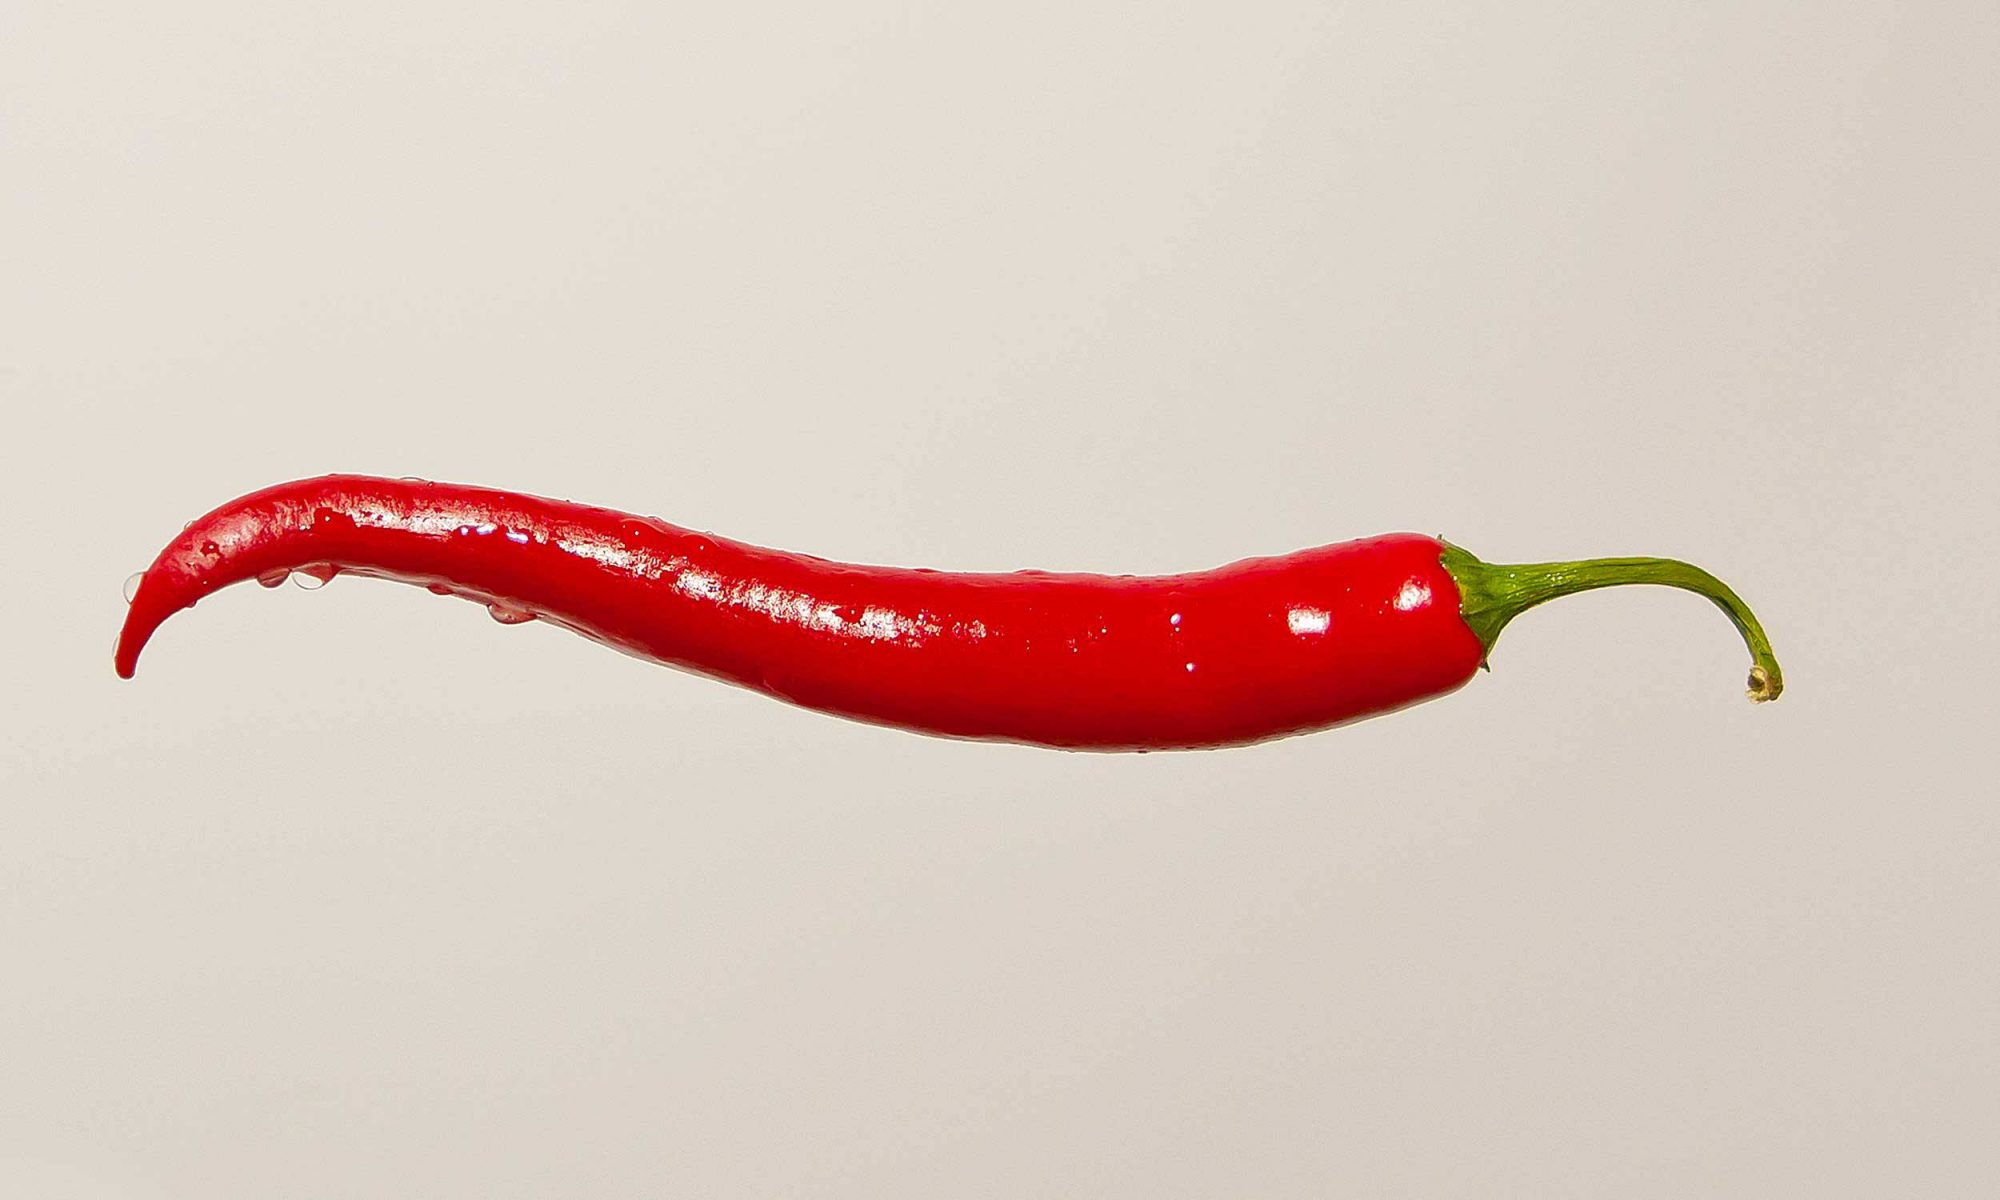 EC: The Psychological Reason Why People Hate Spicy Foods